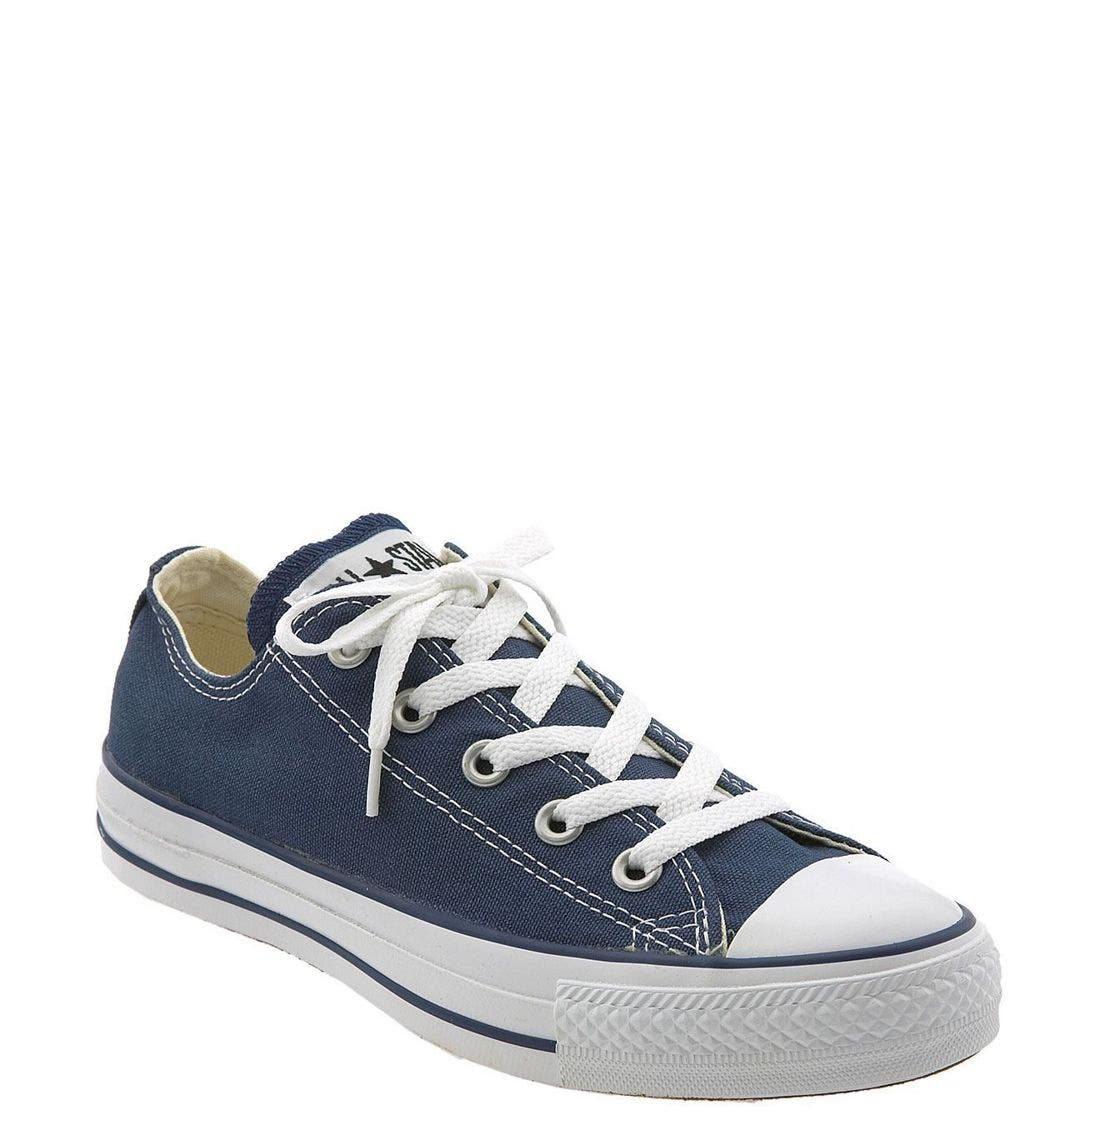 Alternate Image 1 Selected - Converse Chuck Taylor® Low Top Sneaker (Women)